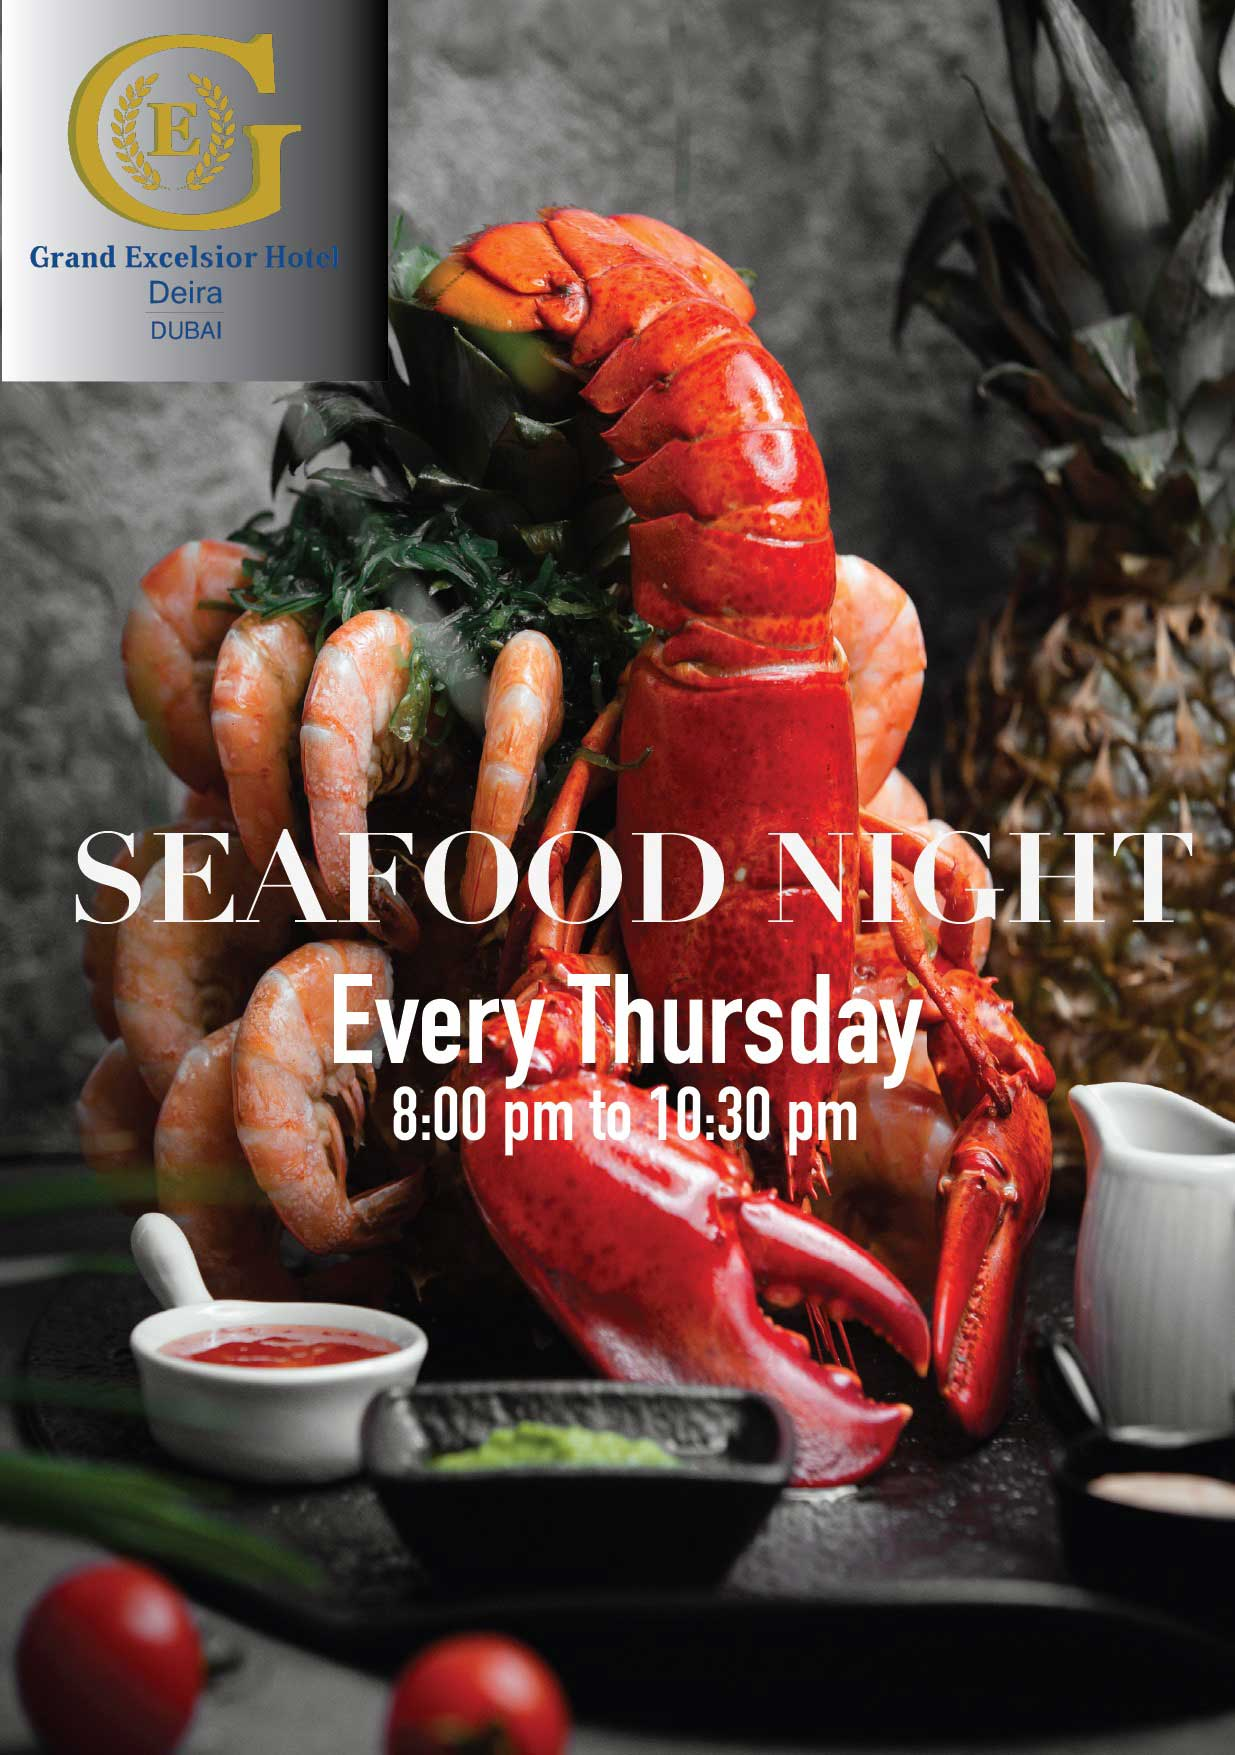 sea-food-night-special-offer